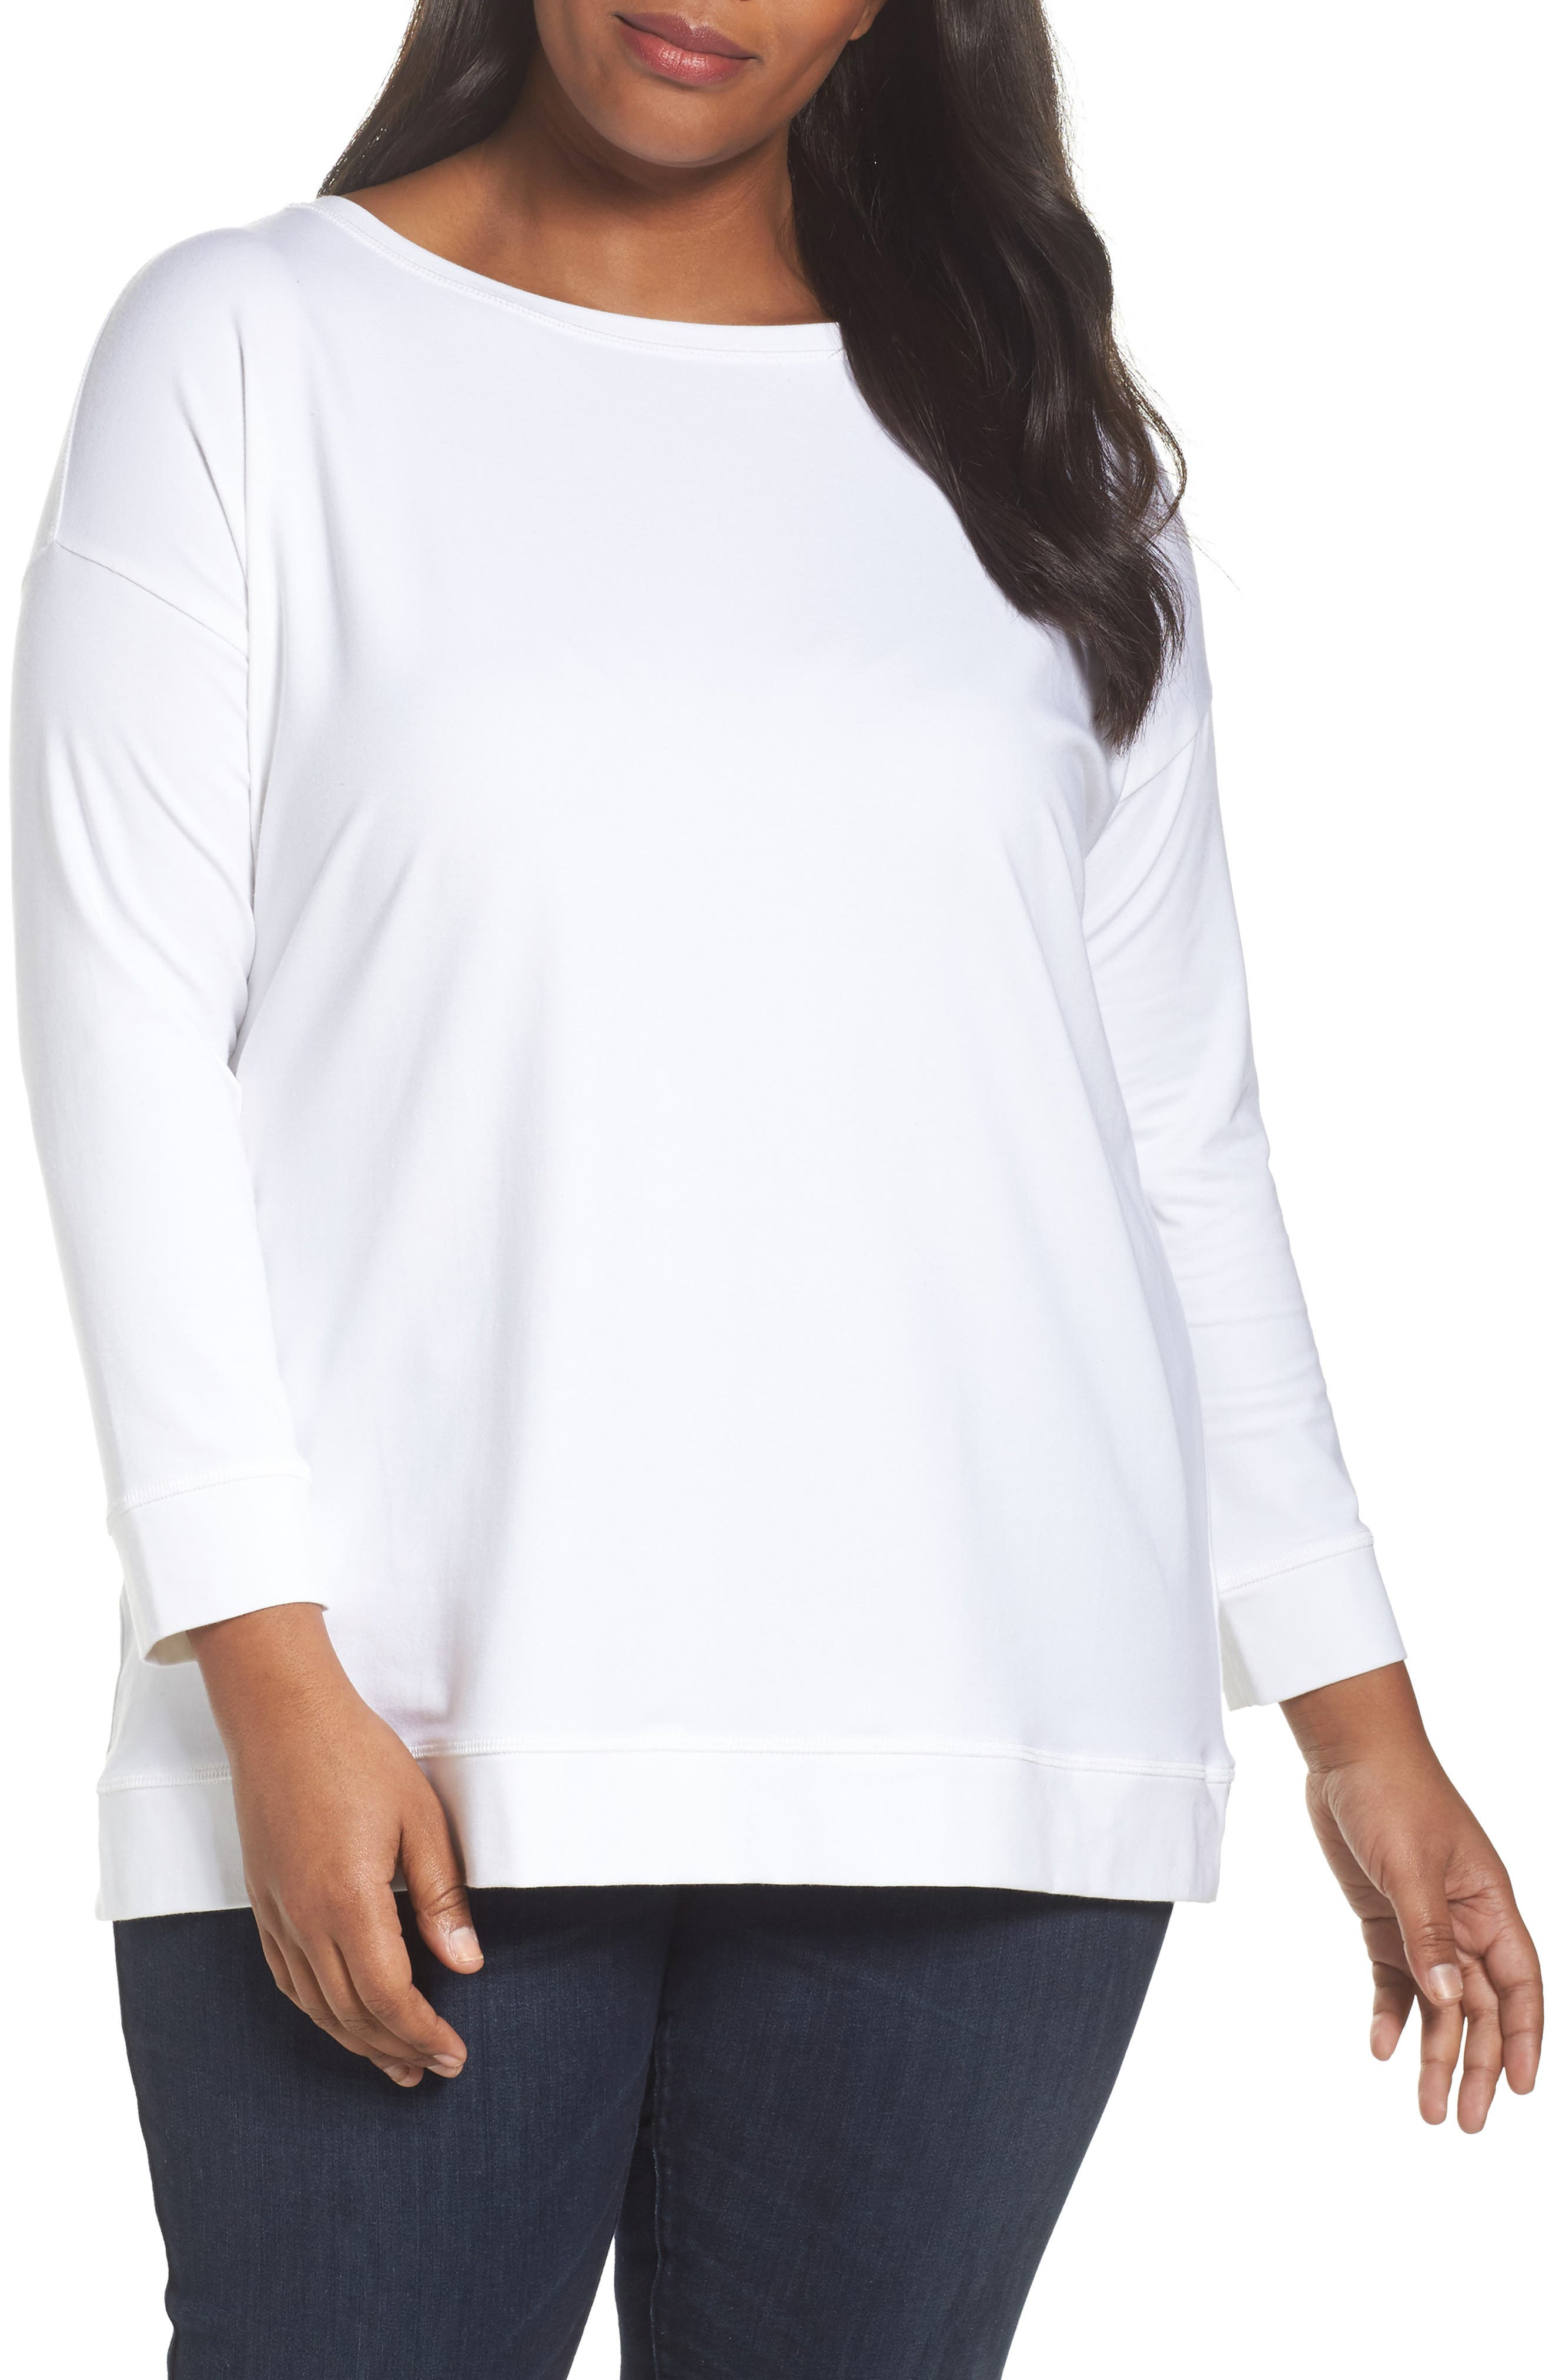 Jewel Neck Organic Stretch Cotton Tee,                             Main thumbnail 1, color,                             100